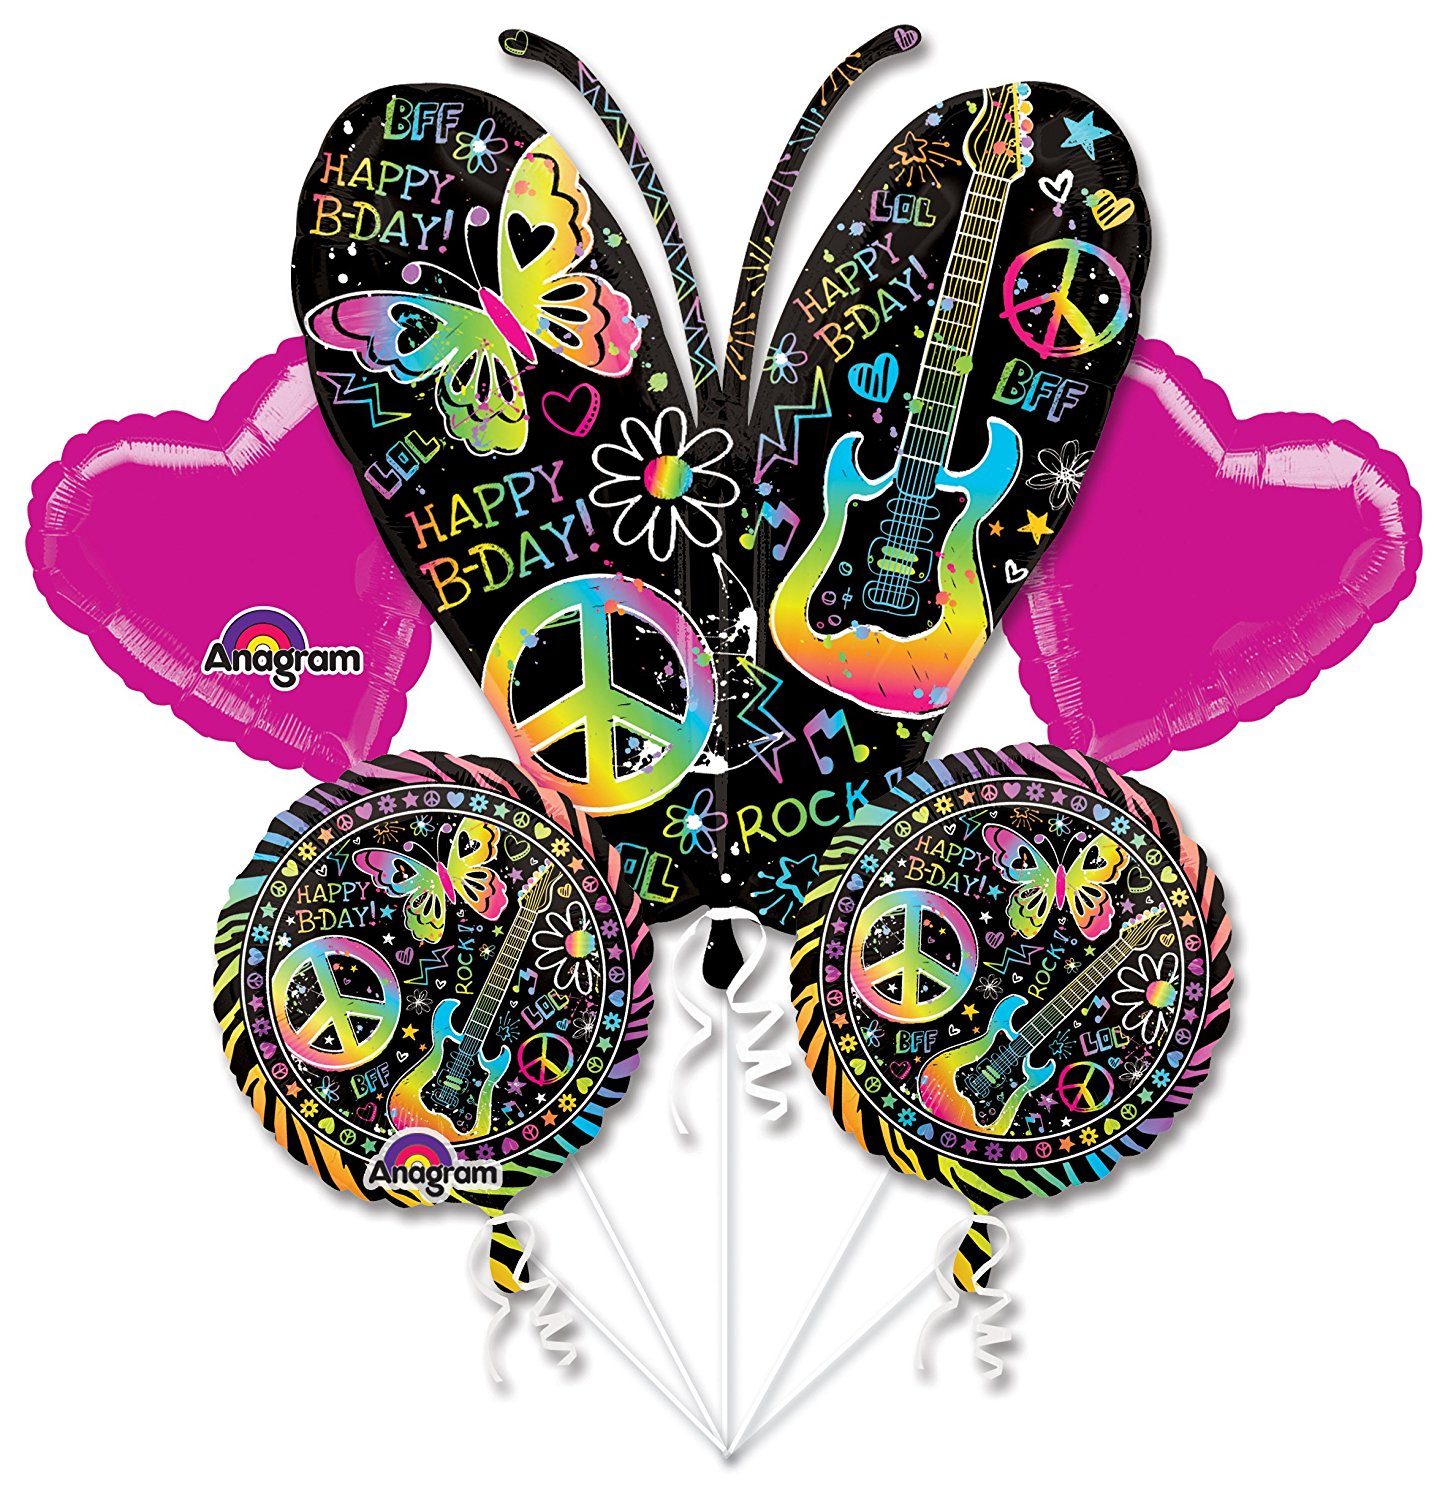 Mayflower BB102628 Neon Birthday Balloon Bouquet1 Balloon Bouquet per package By Anagram